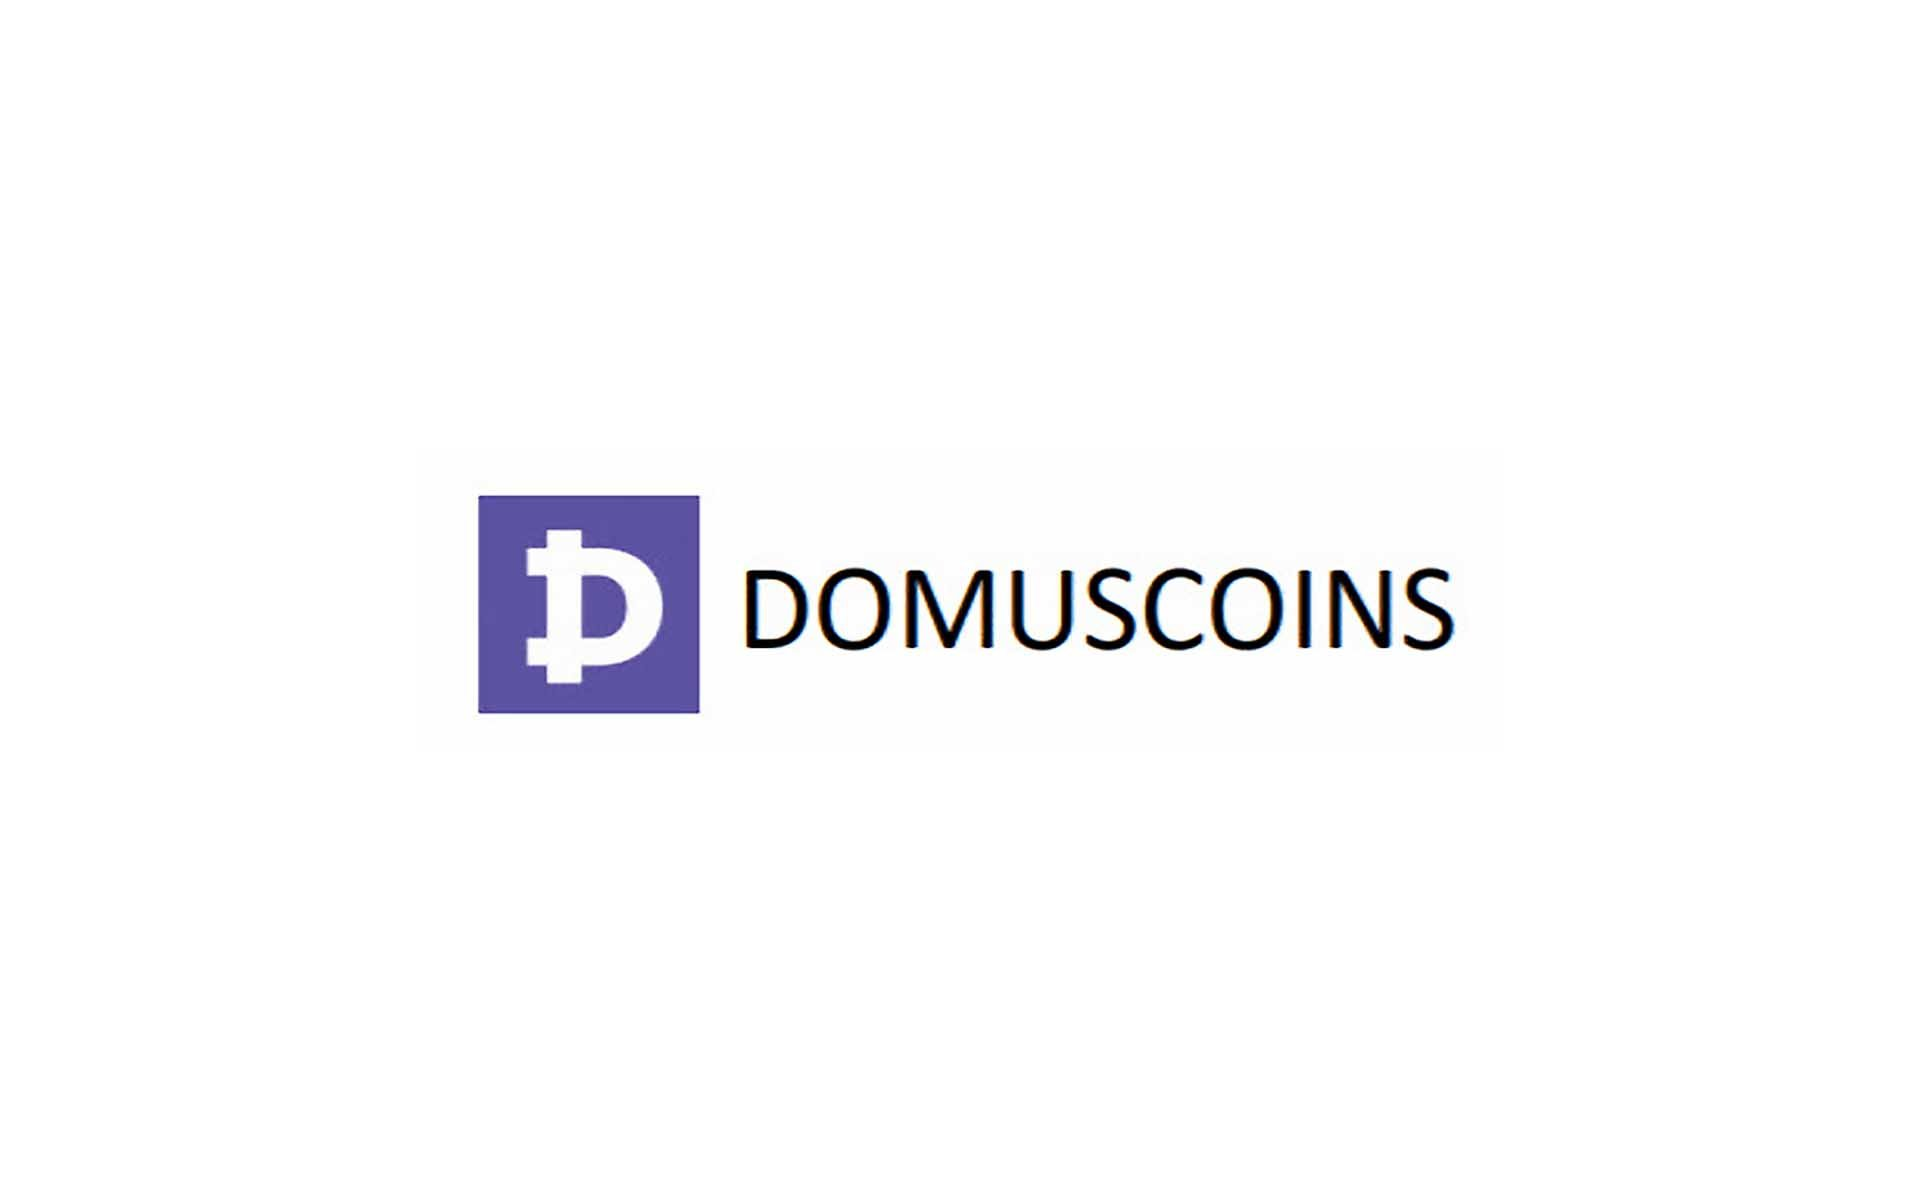 DomusCoins Ready To Launch ICO – New Crypto Platform Backs its Cryptocurrency With Existing Real Estate Properties